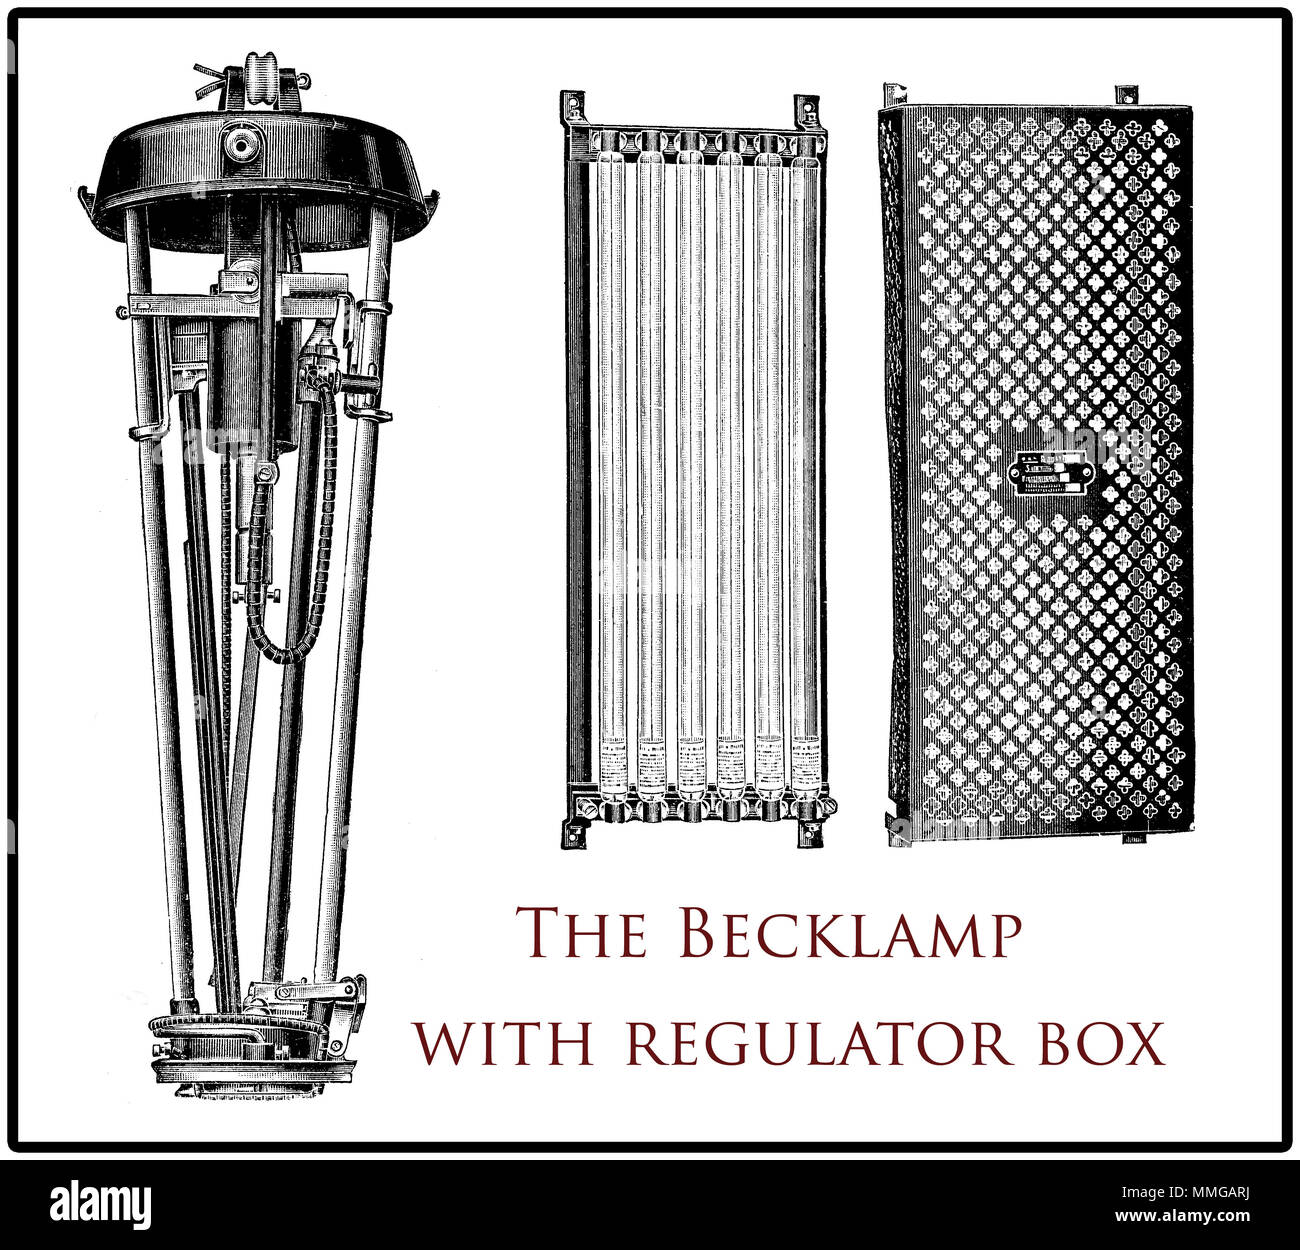 Vintage Becklamp, arc lamp with its regulator box, XIX century engraving - Stock Image